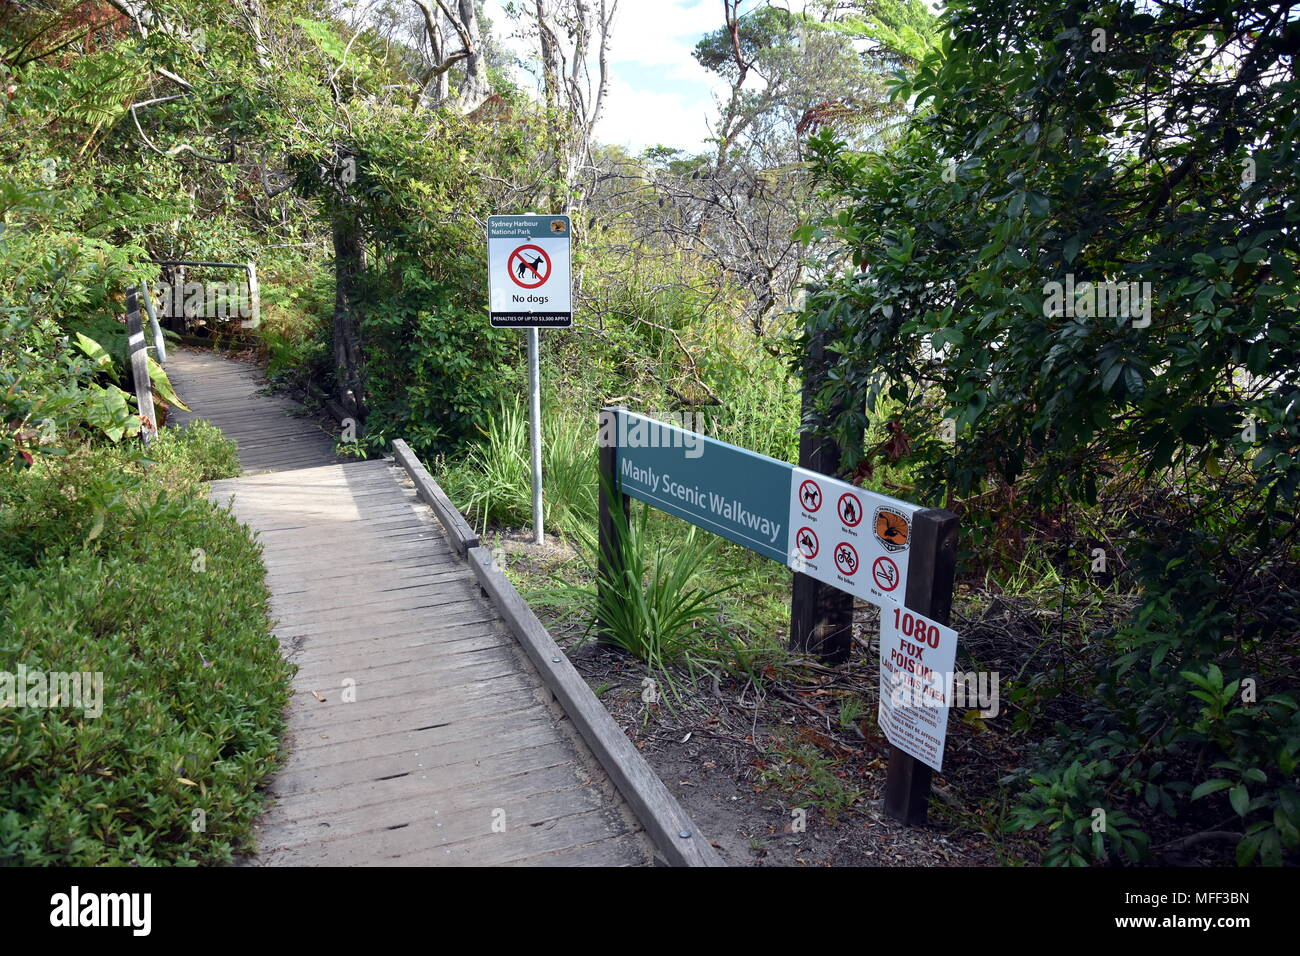 Clontarf, Australia - Feb 4, 2018. The Manly to Spit Bridge Walk. Bushwalking from Manly to Mosman across Sydney Harbour National Park. - Stock Image